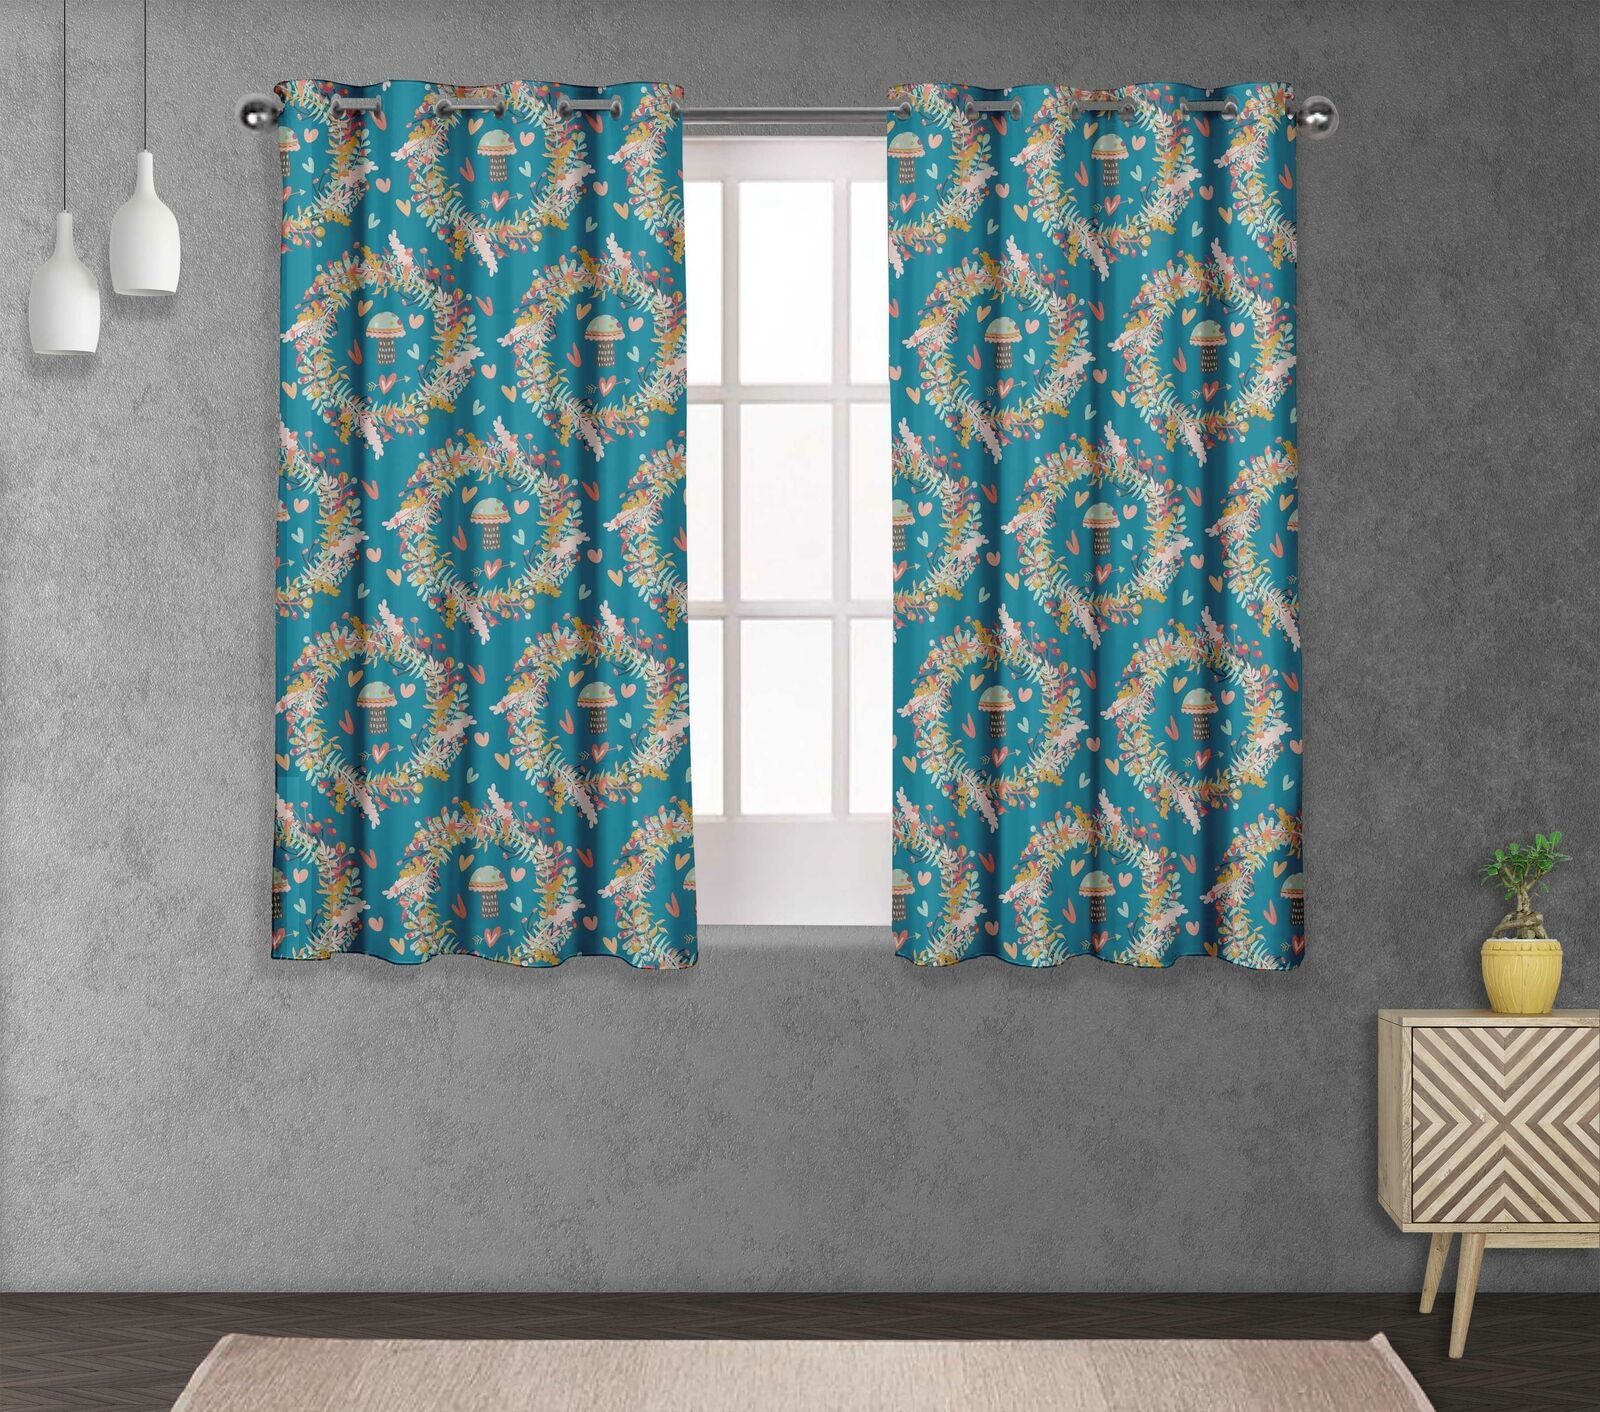 S4sassy Mushroom & Wreath Bedroom short & long Window  Eyelet Curtains -FL-844B